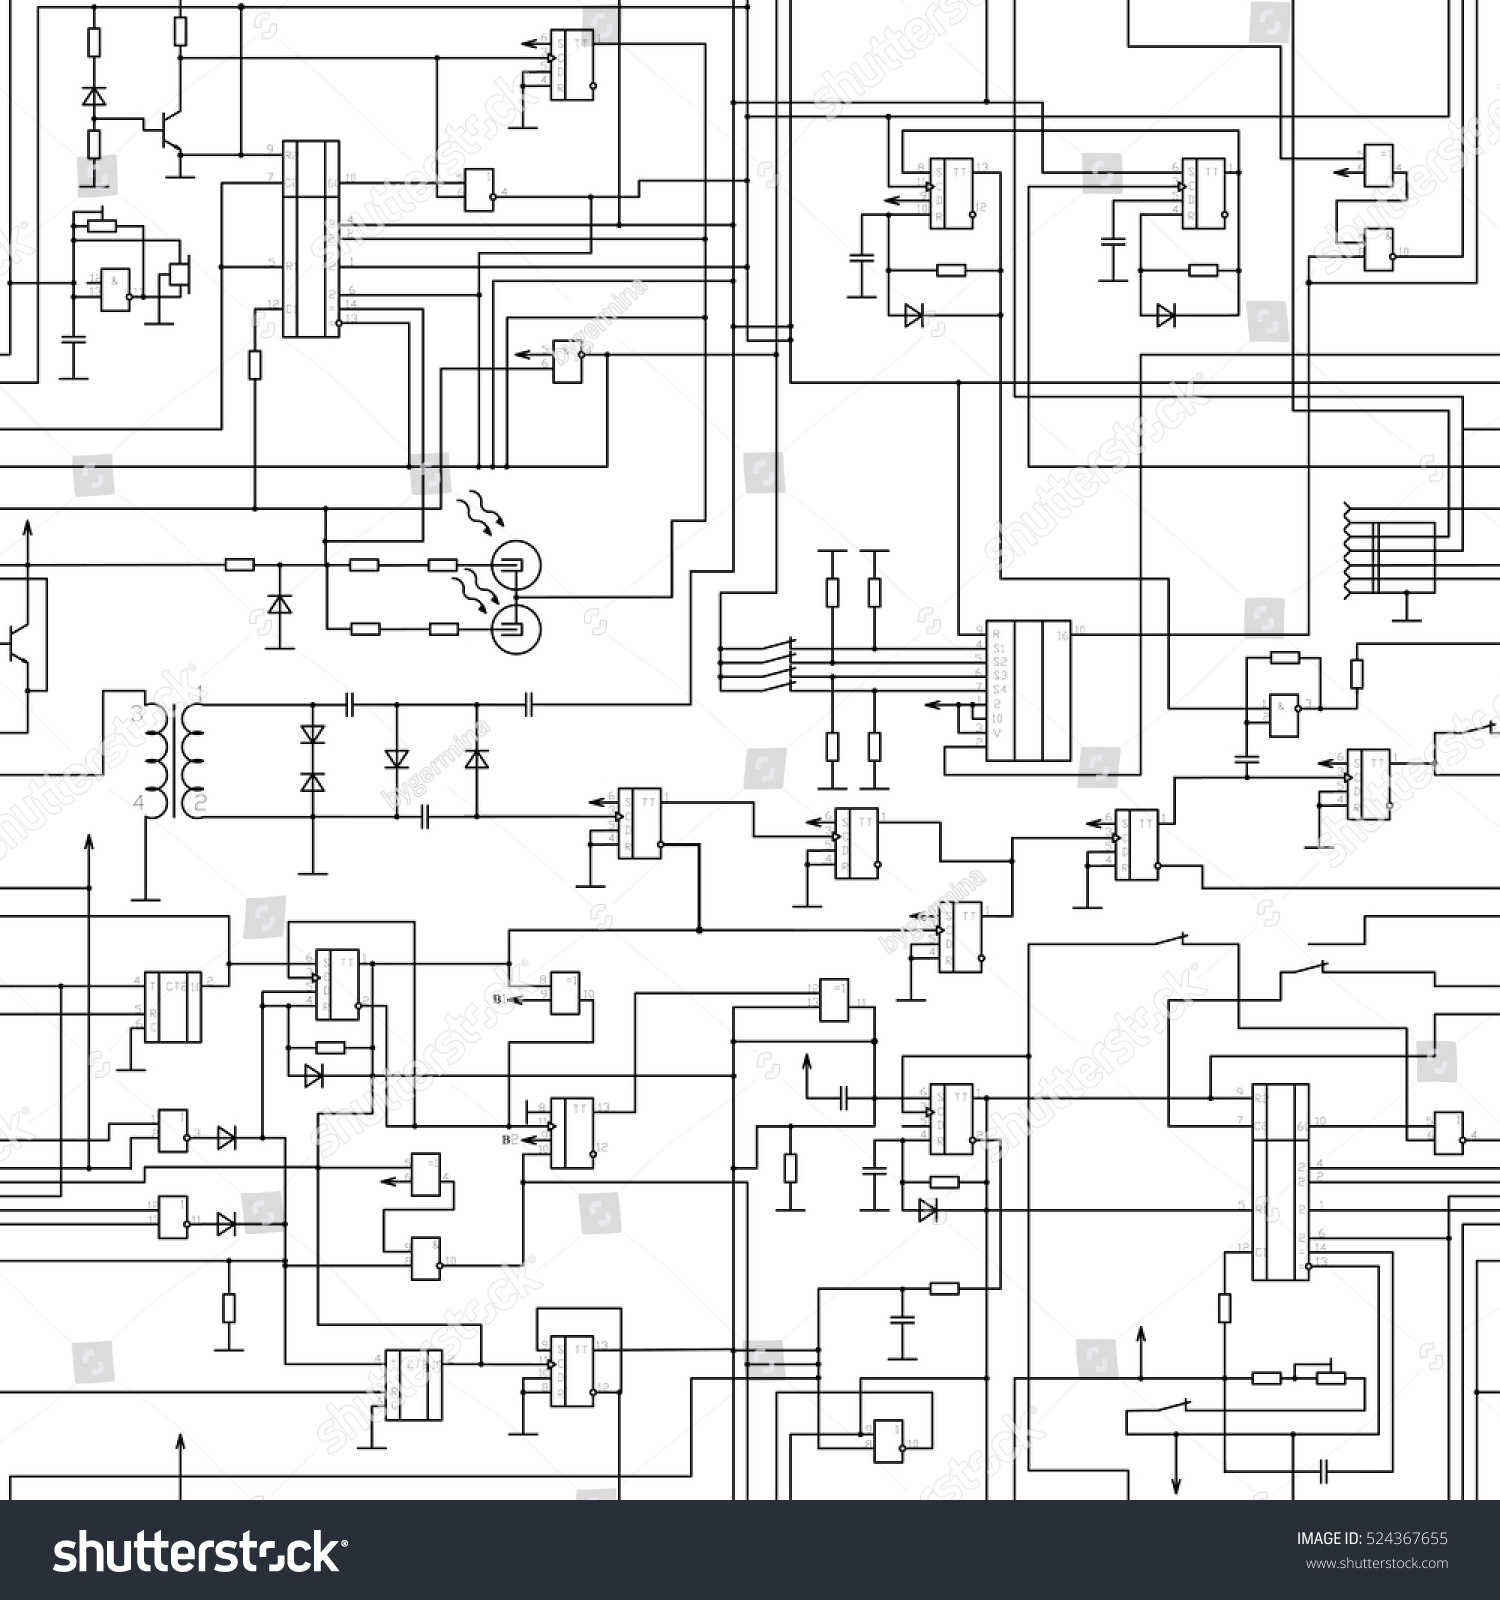 Vector seamless electrical circuit diagram pattern.